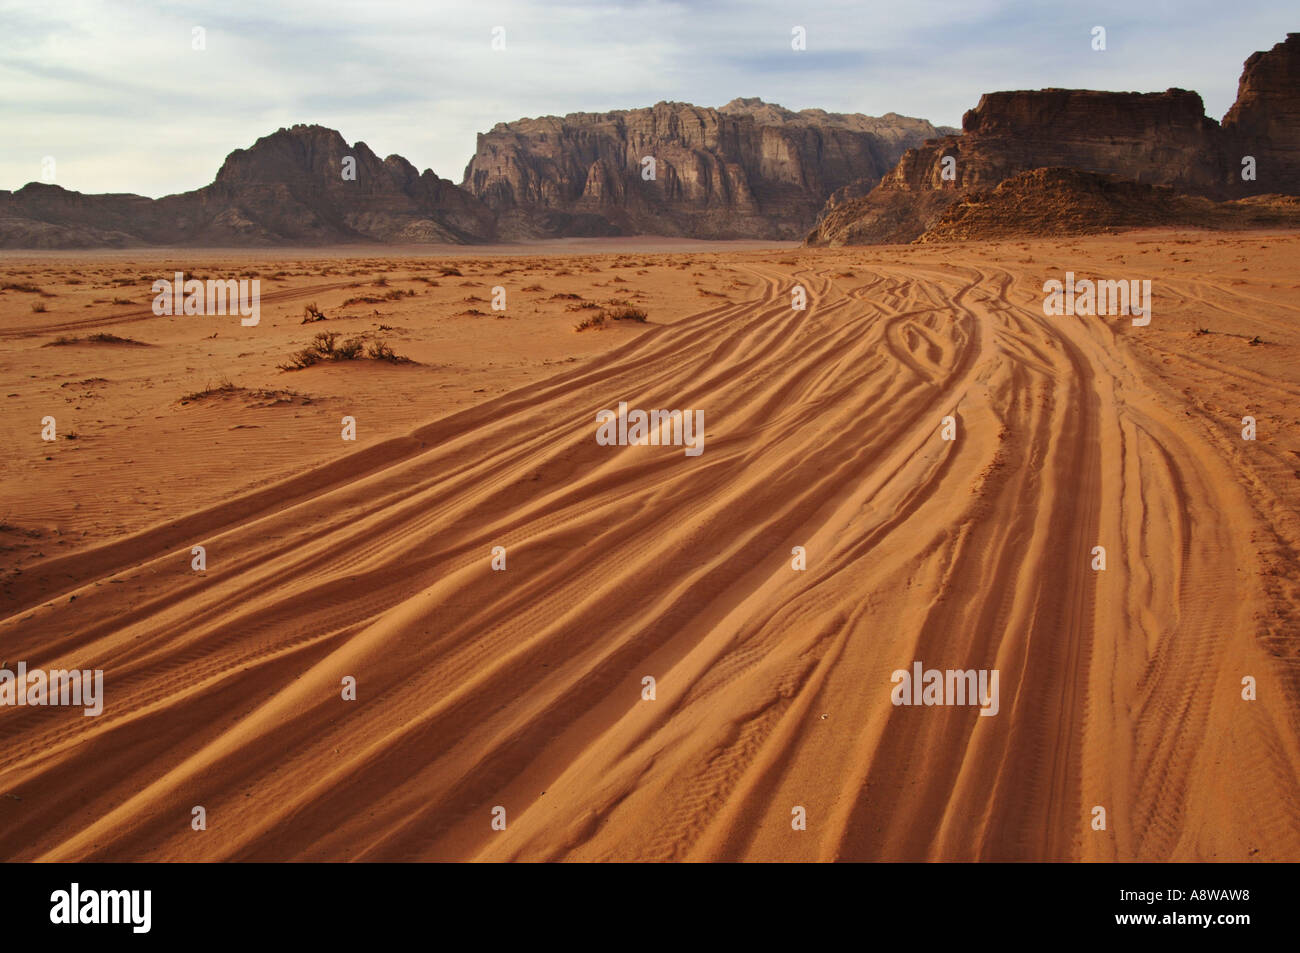 Tyre tracks in the desert landscape of Wadi Rum Protected Area Jordan - Stock Image